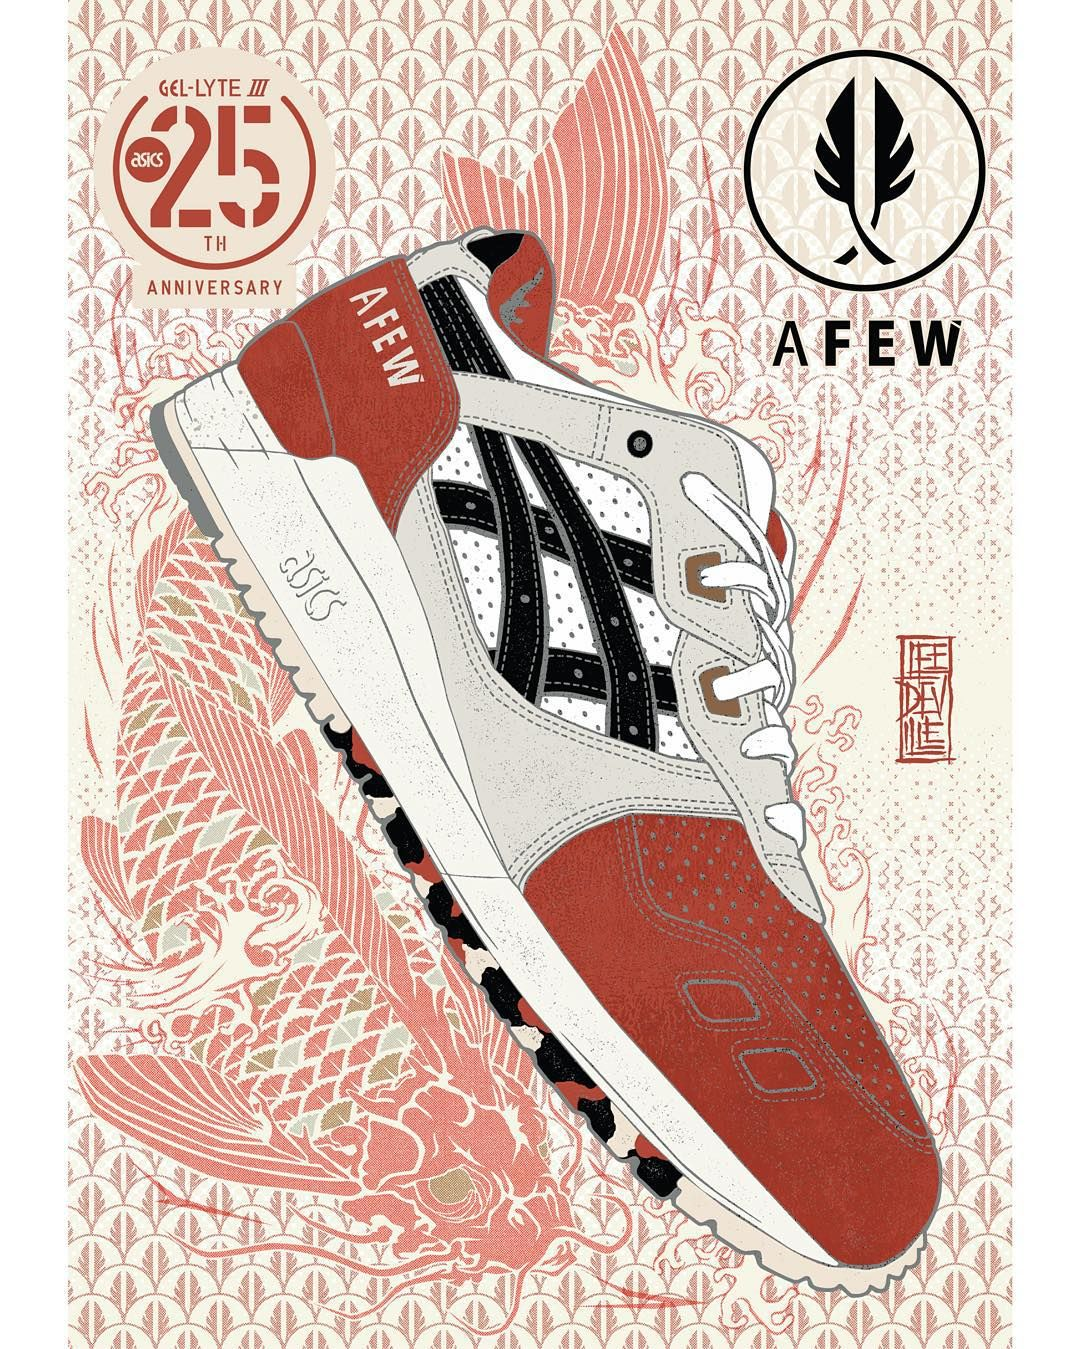 6a187b03e5ed Poster artwork celebrating the 25th anniversary  GelLyteIII collaborations  this year. Heres number 5 of 12 with our friends  afewstore (artwork by ...